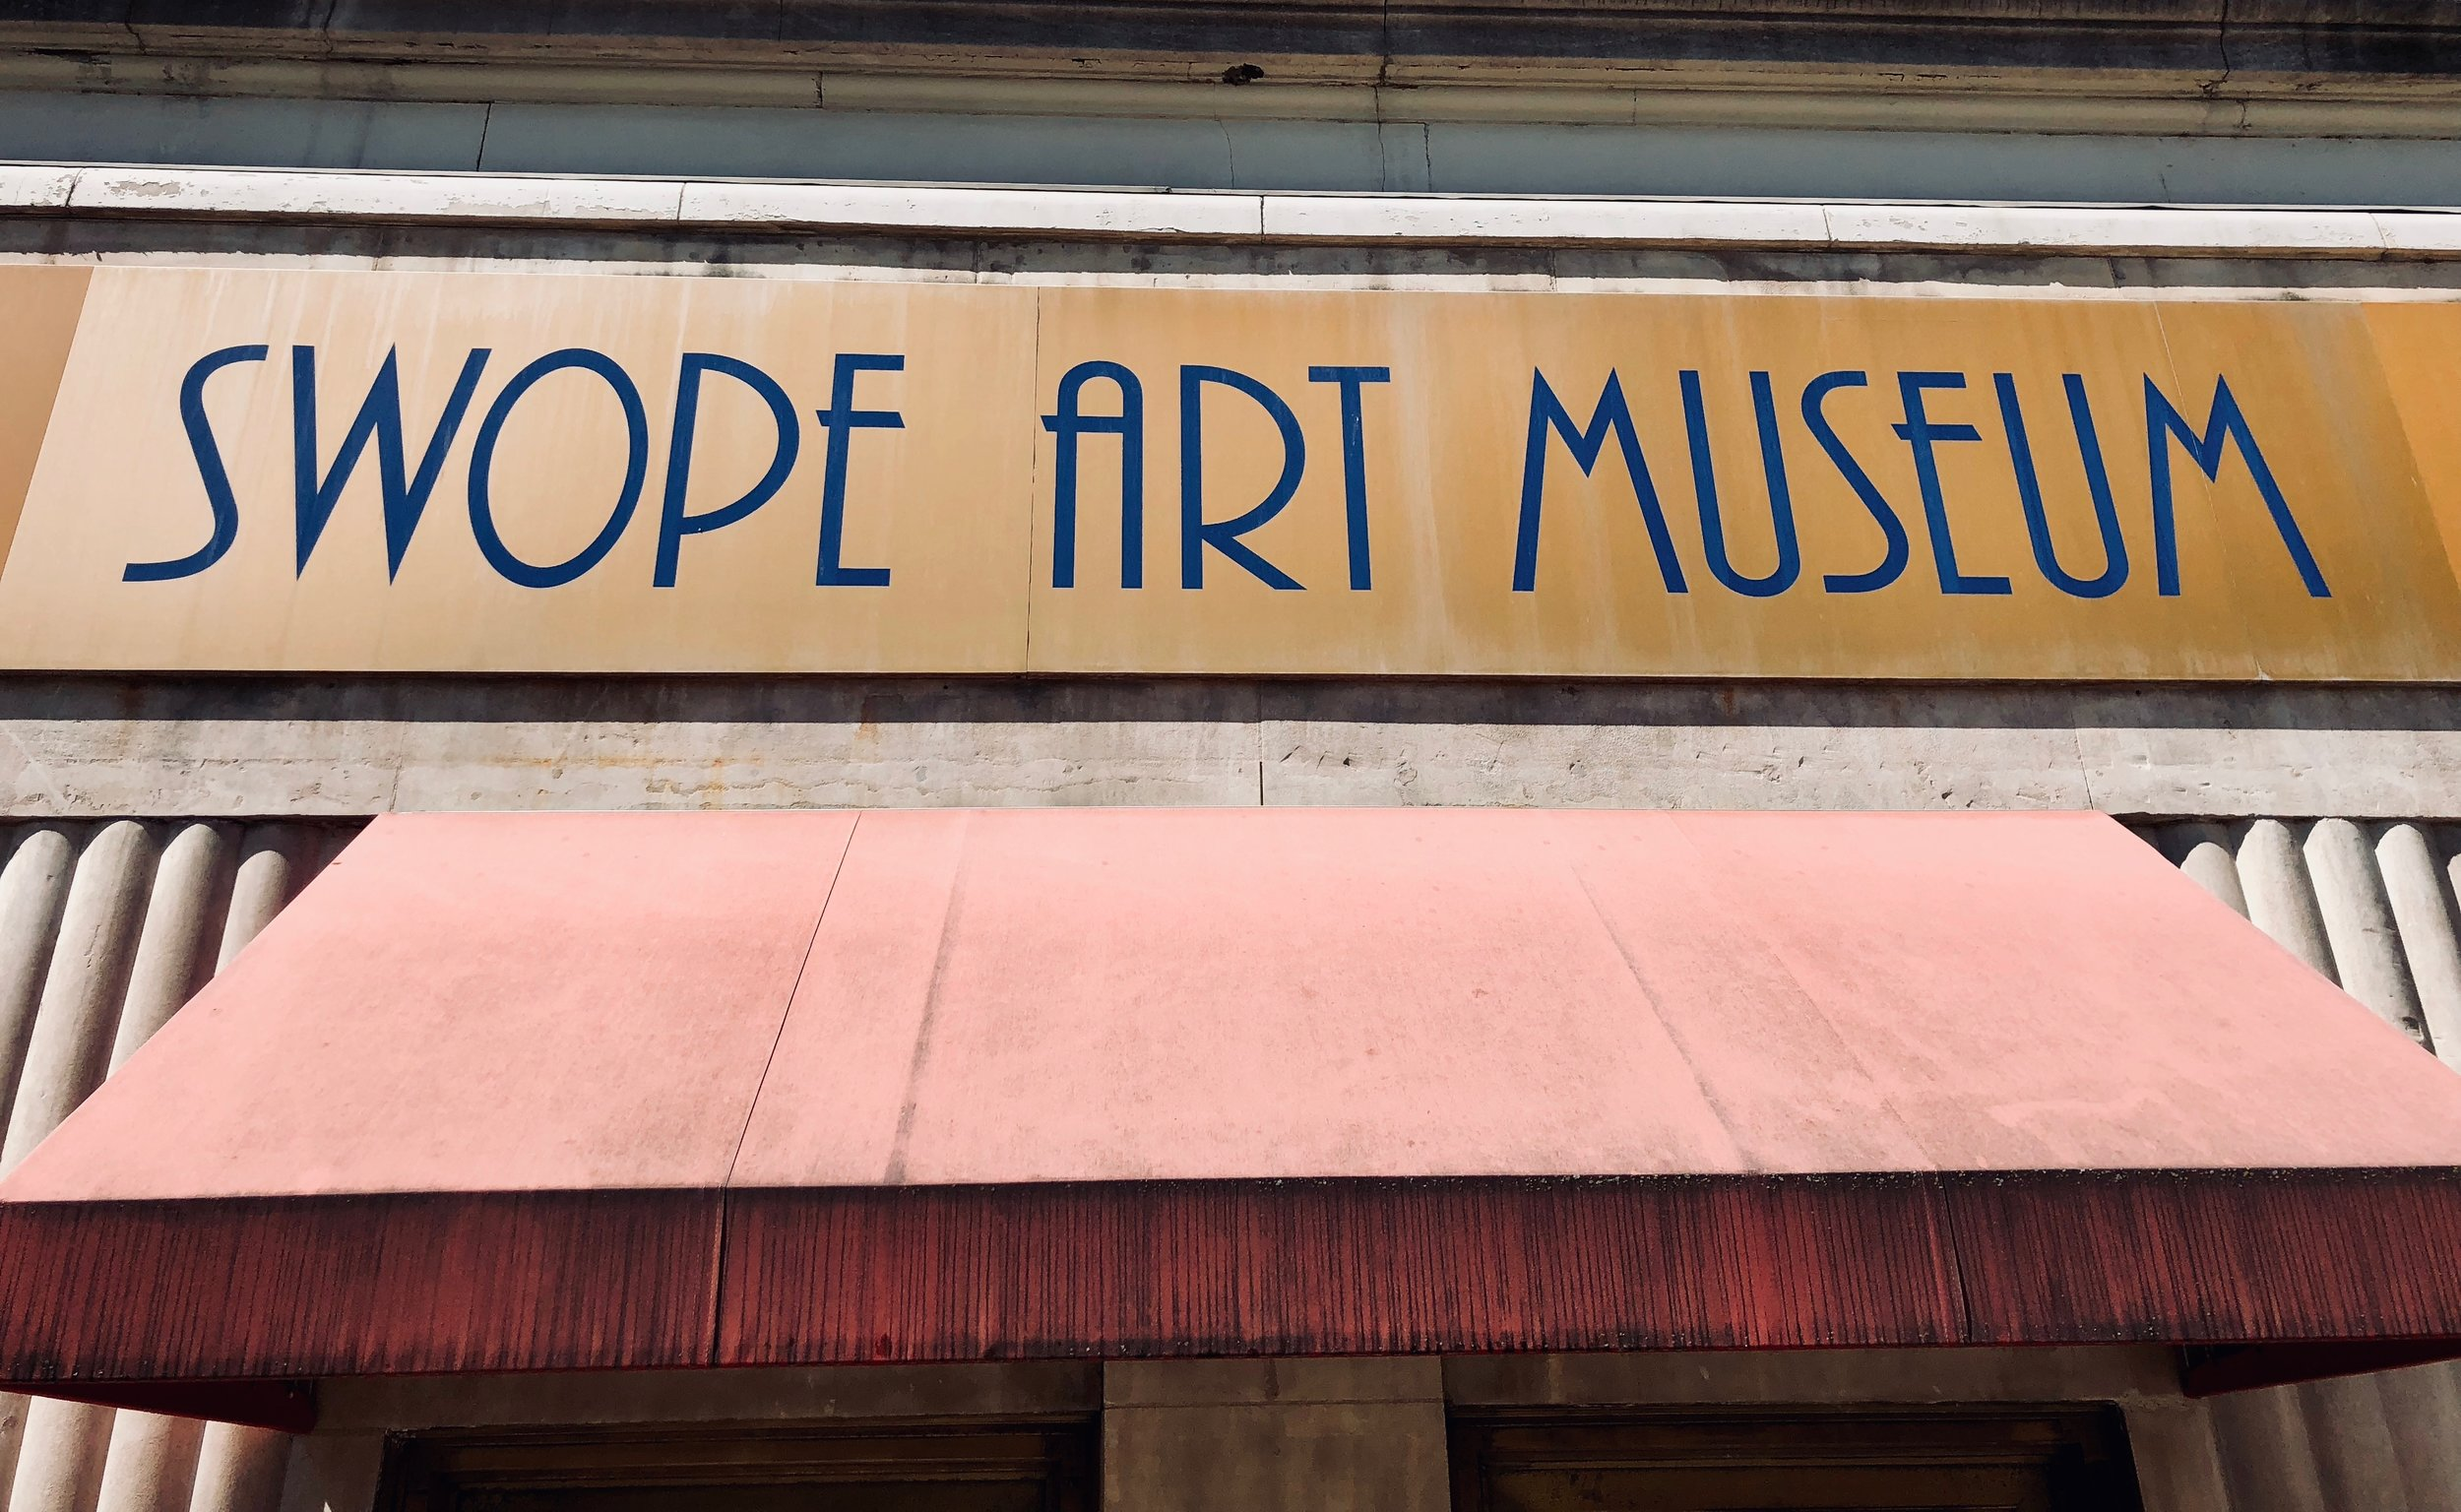 The Swope is a small museum dedicated to American art in downtown Terre Haute